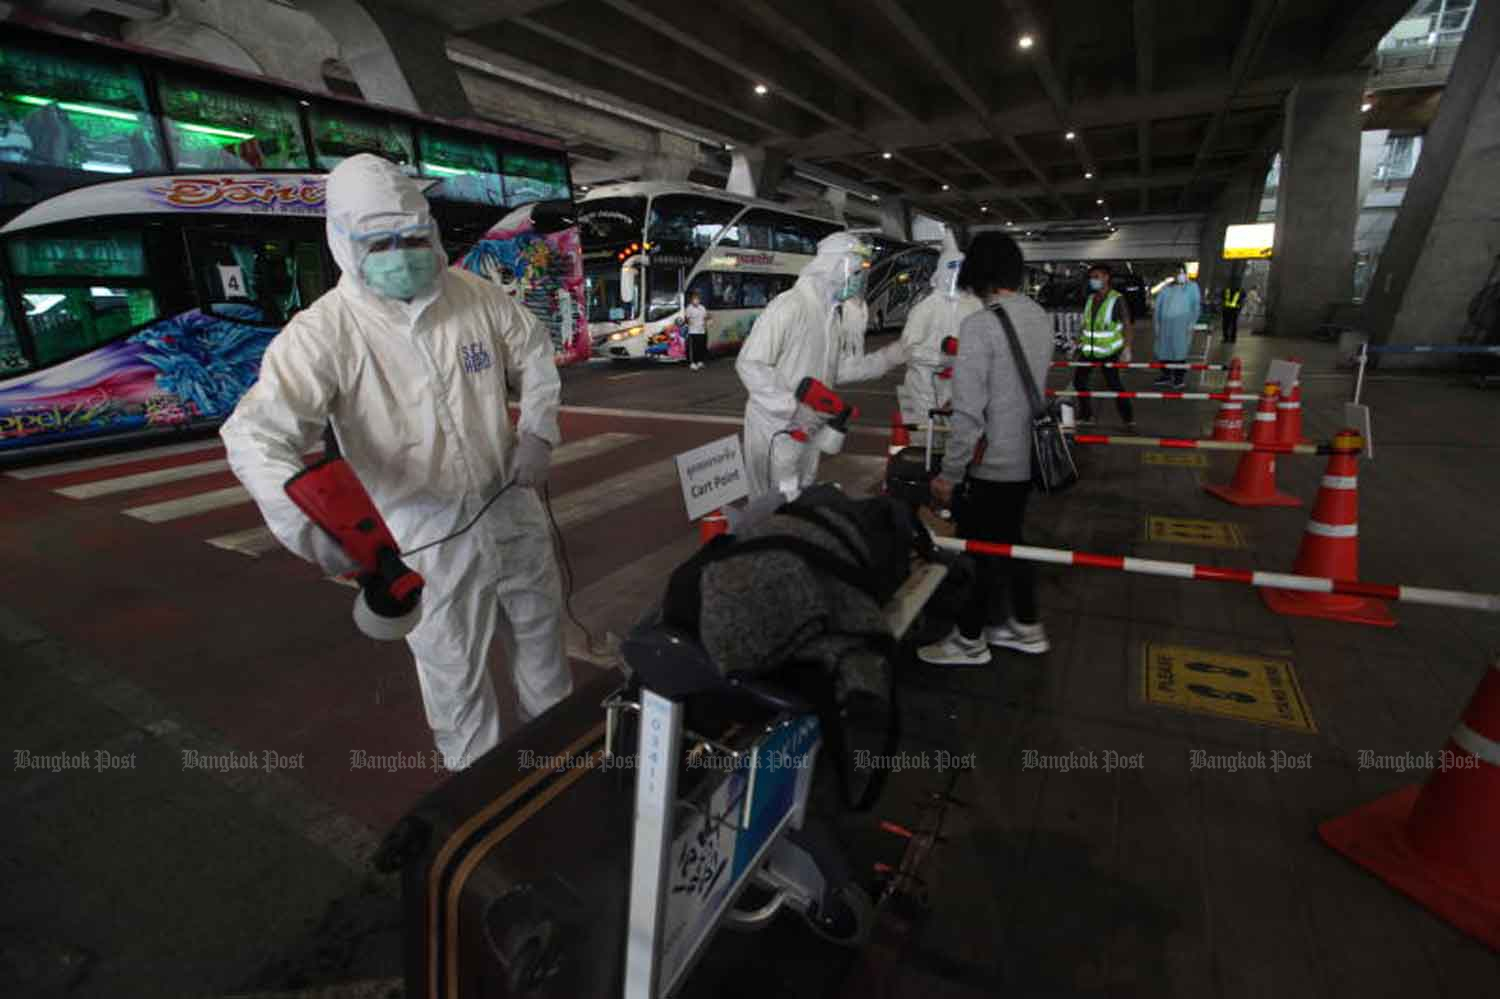 Disease control officials disinfect returnees and their luggage before they are taken to to quarantine, at Suvarnabhumi airport in Samut Prakan province. (File photo: Arnun Chonmahatrakool)